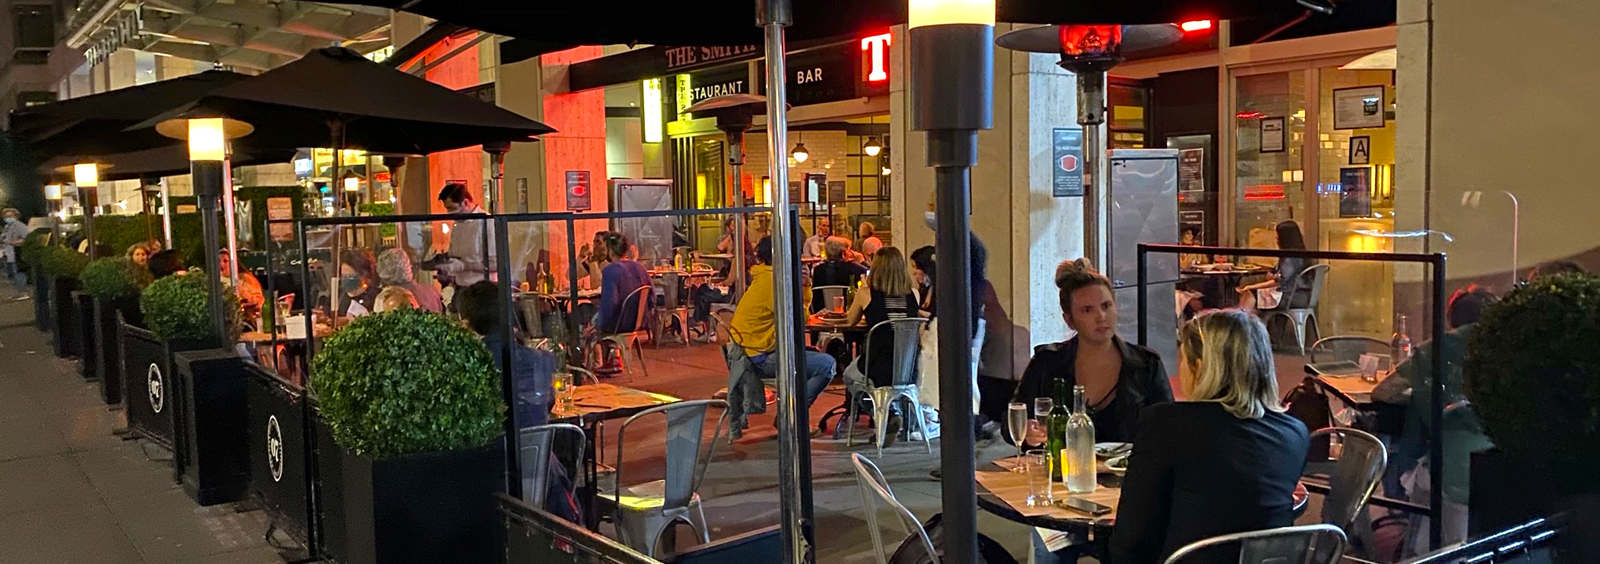 people dining on the empire rooftop